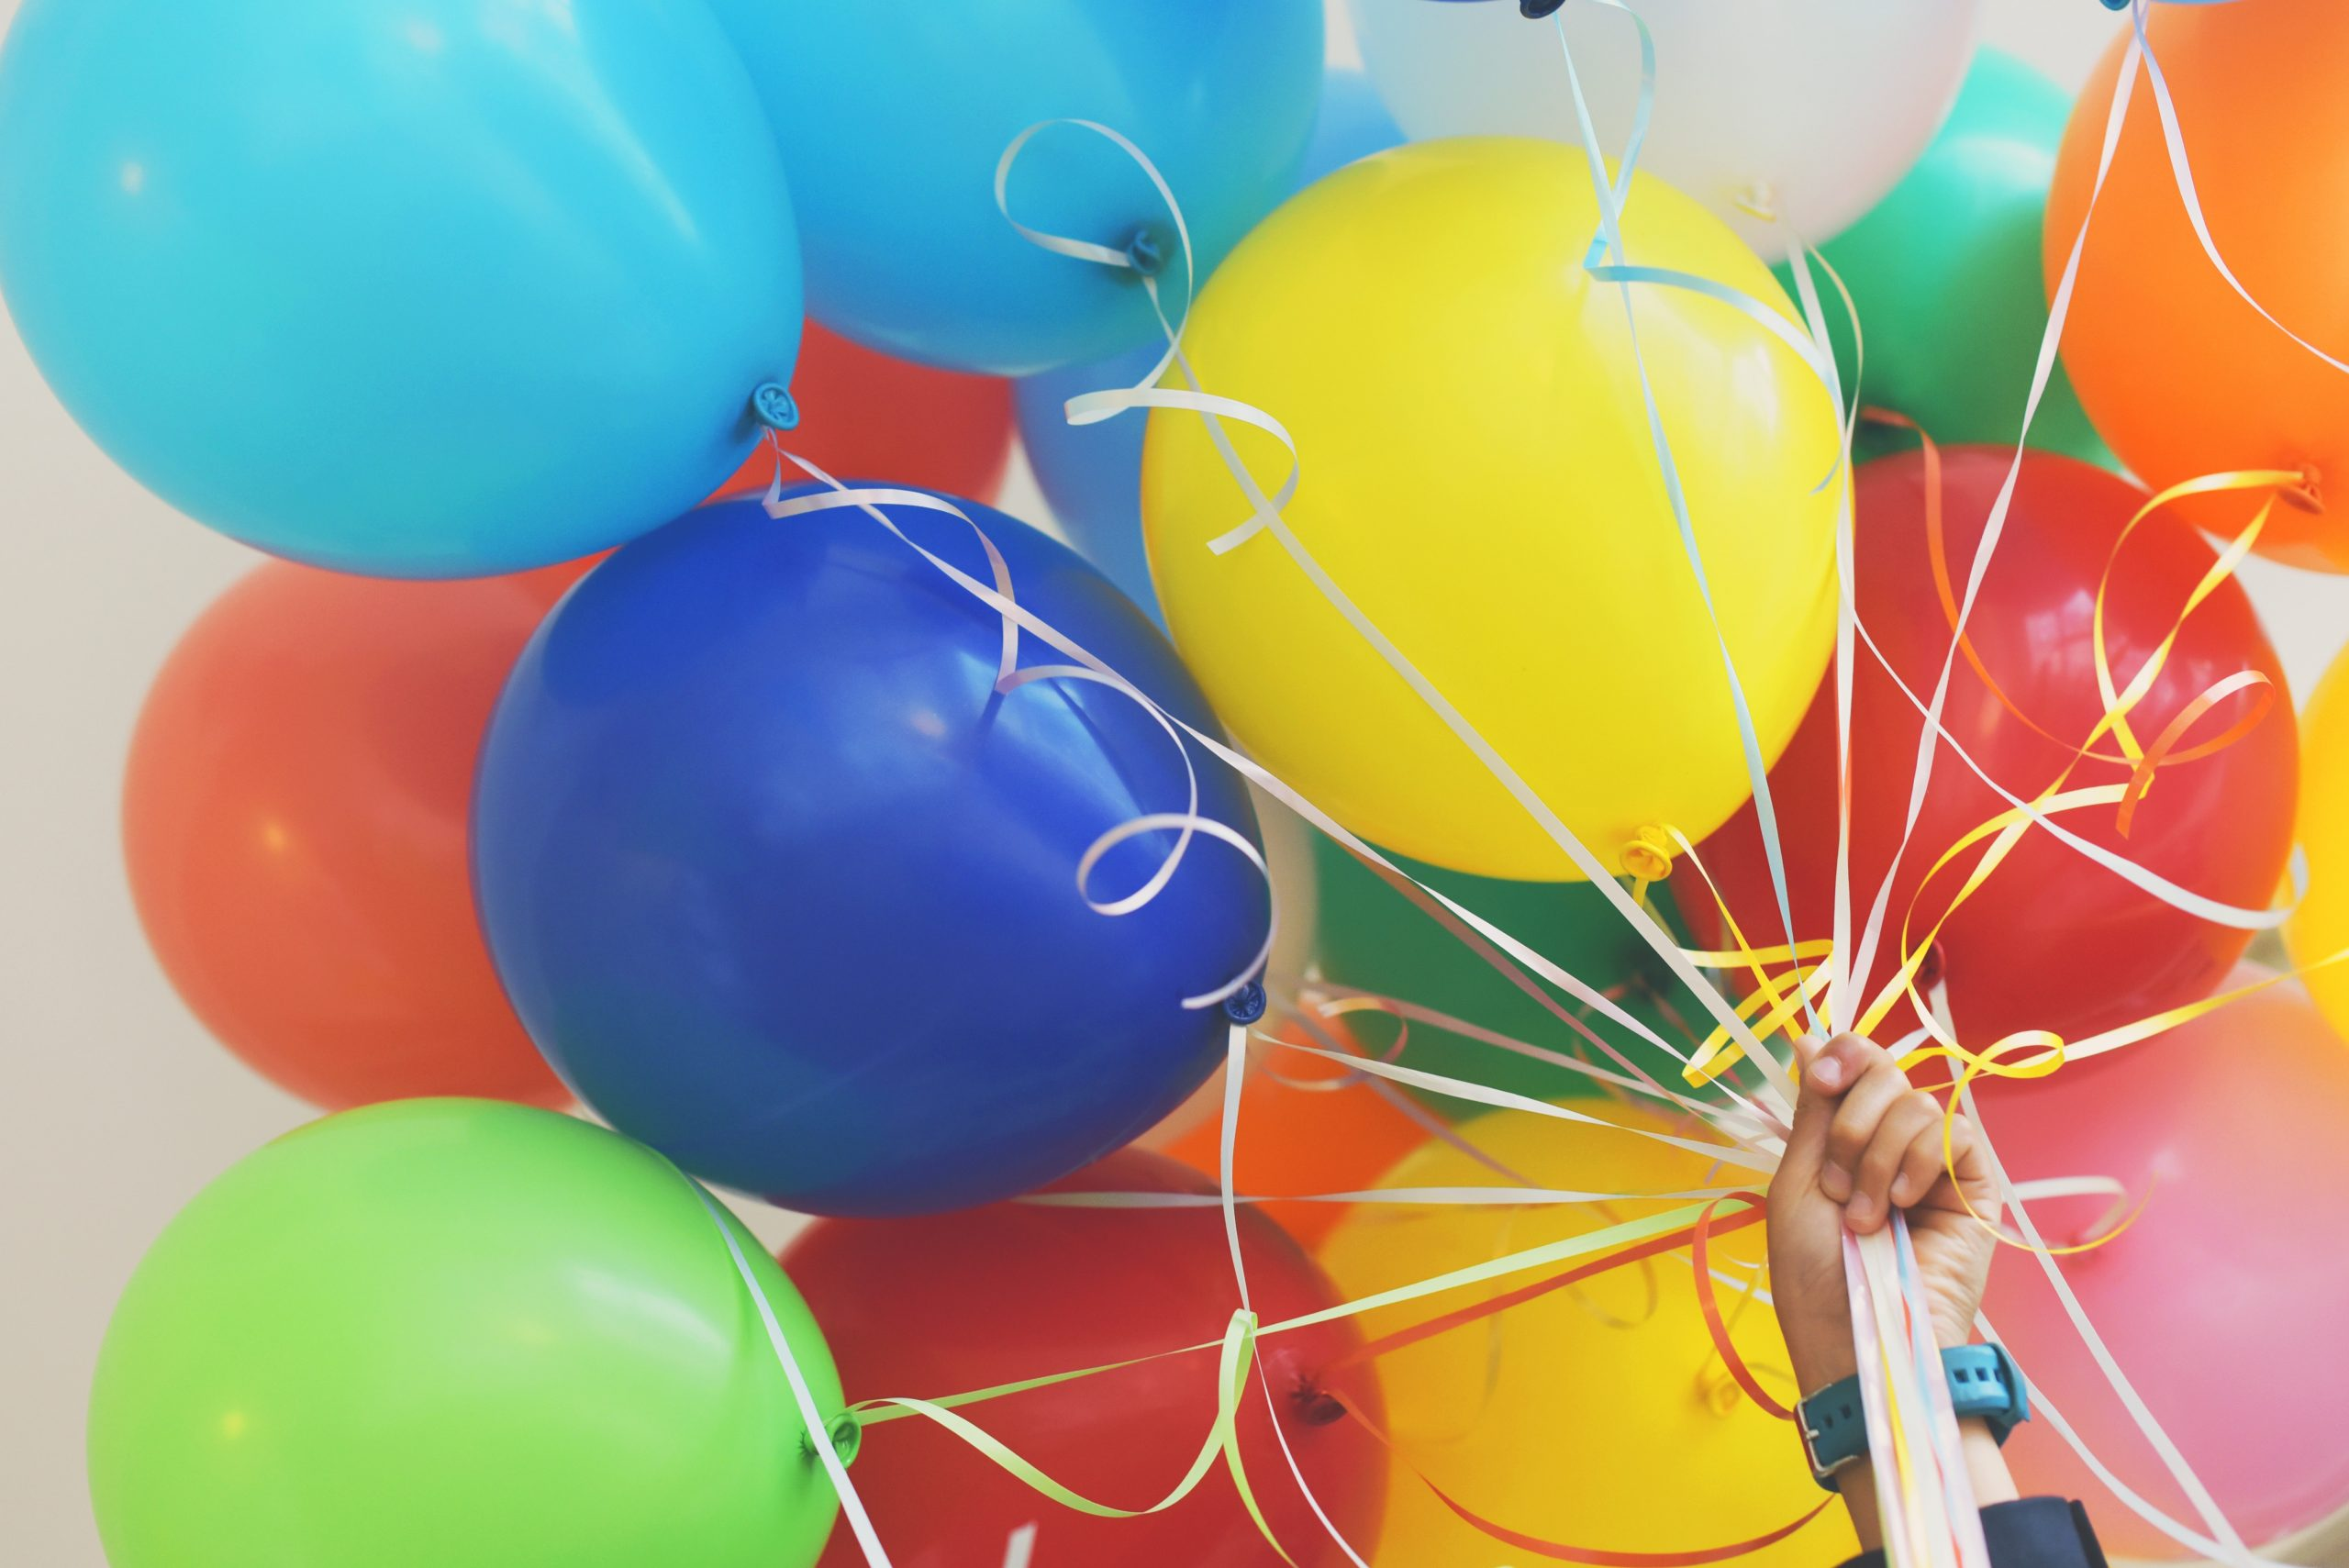 Close up of colorful balloons being held by a hand